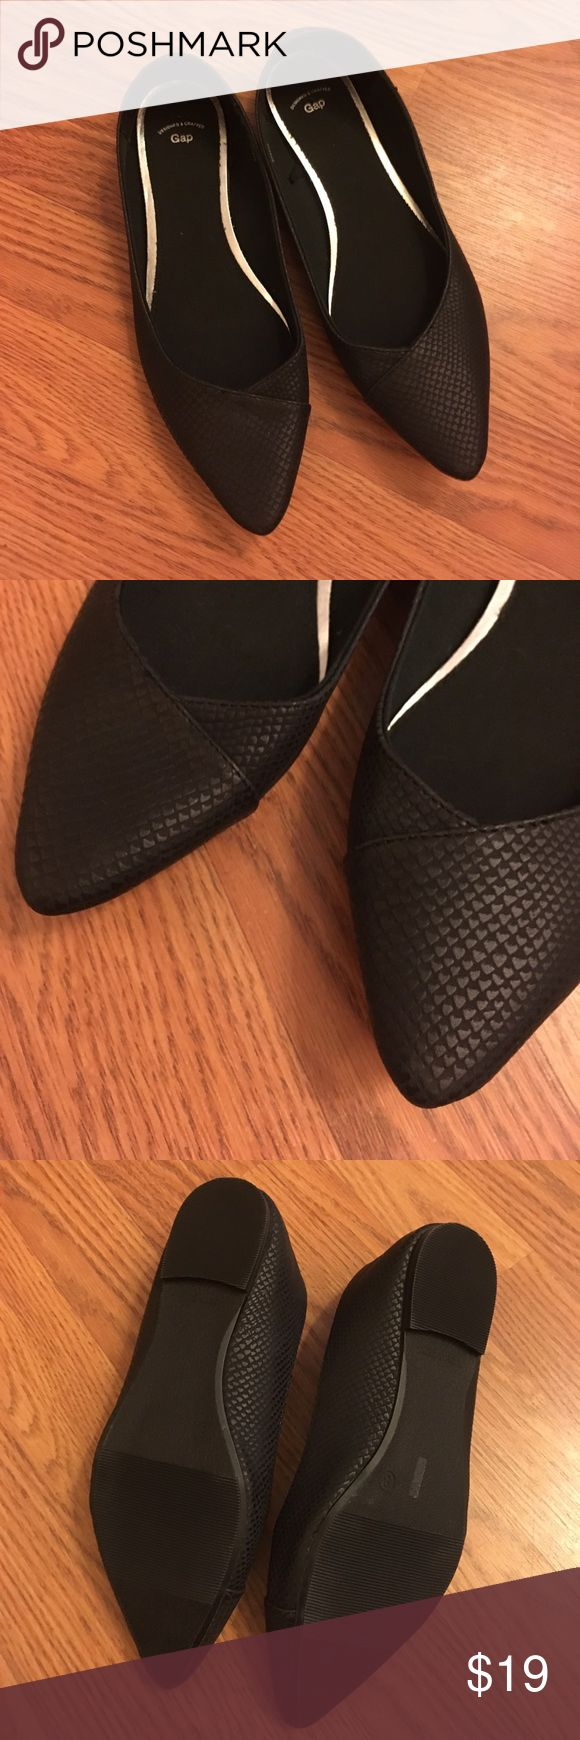 Gap Black Snakeskin Printed Pointy Flats New without tags or box GAP Shoes Flats & Loafers